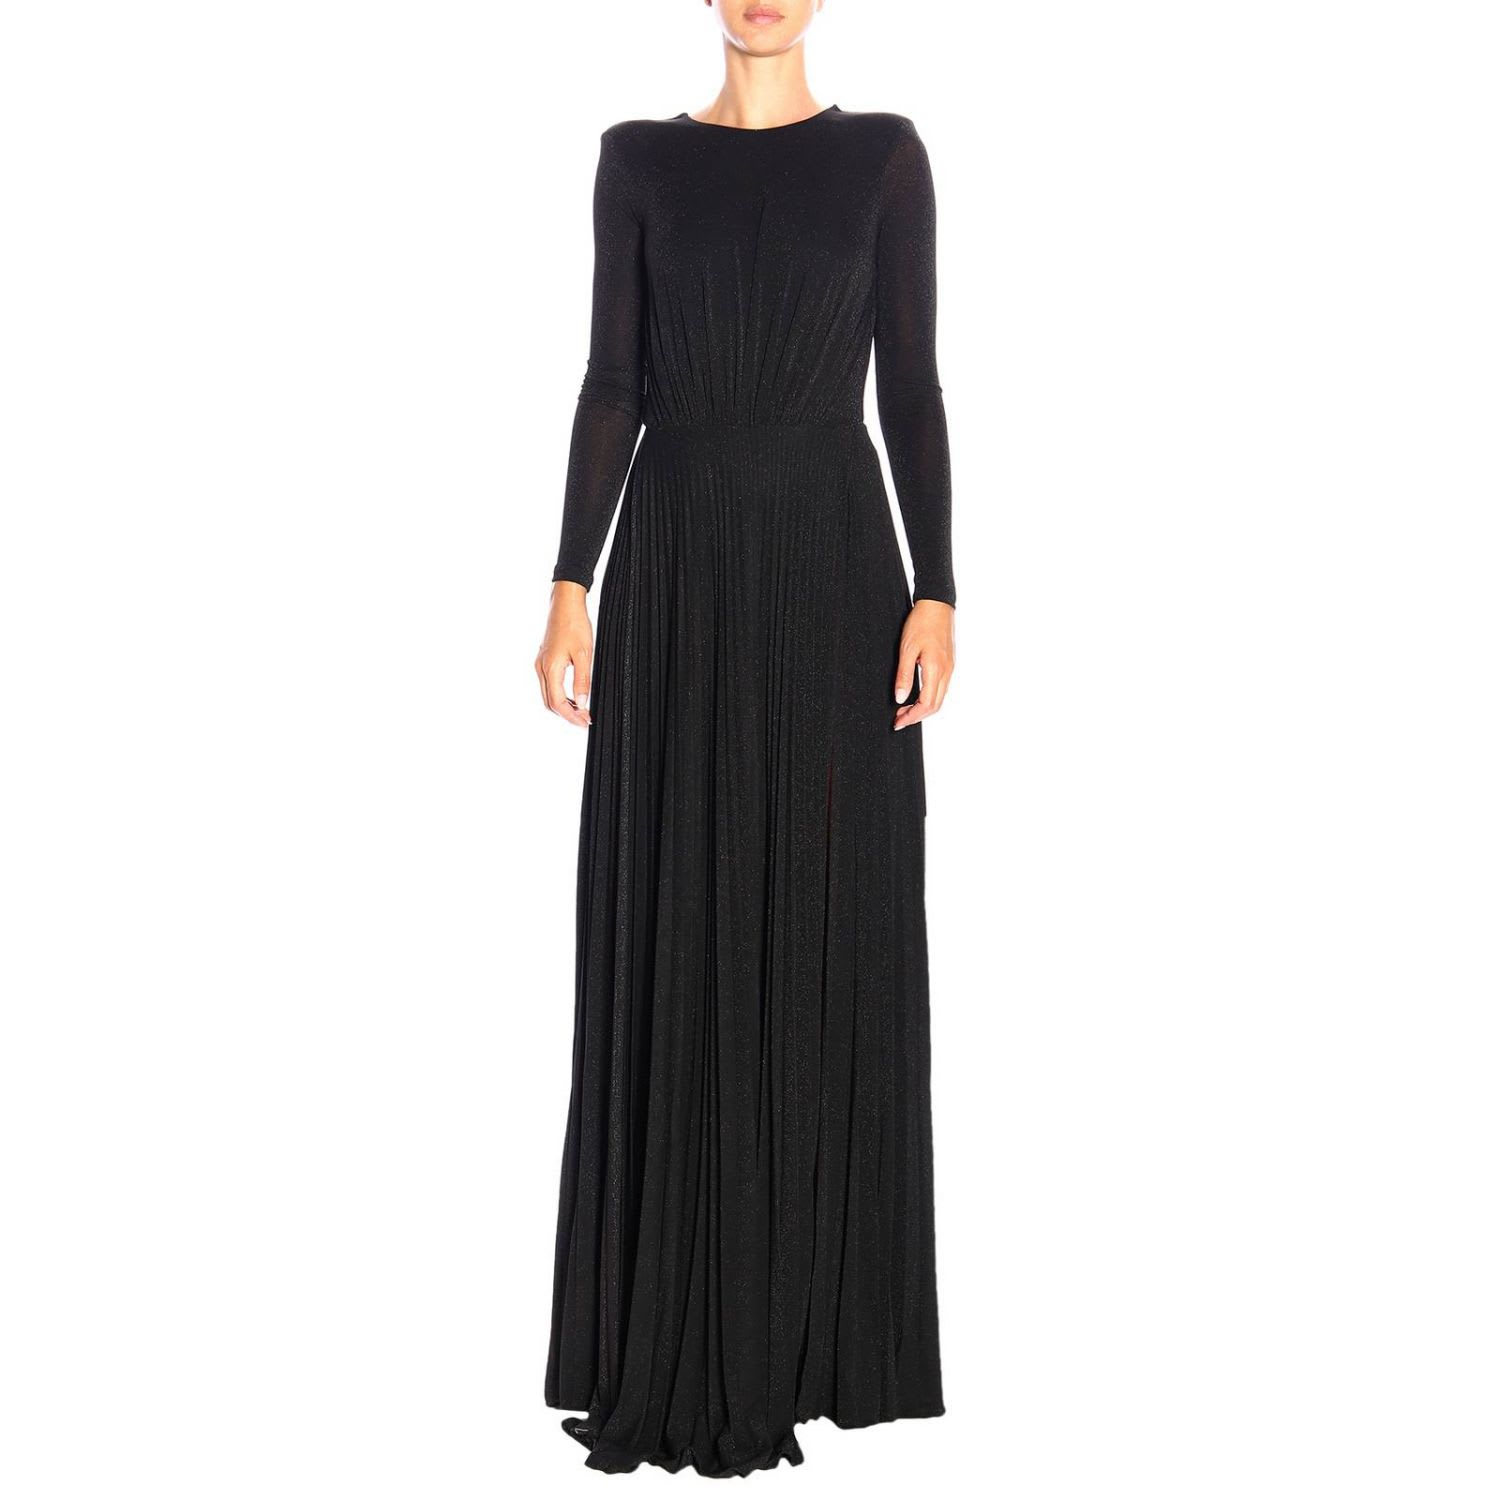 Elisabetta Franchi Dress Elisabetta Franchi Long Dress In Lurex Fabric With Chain